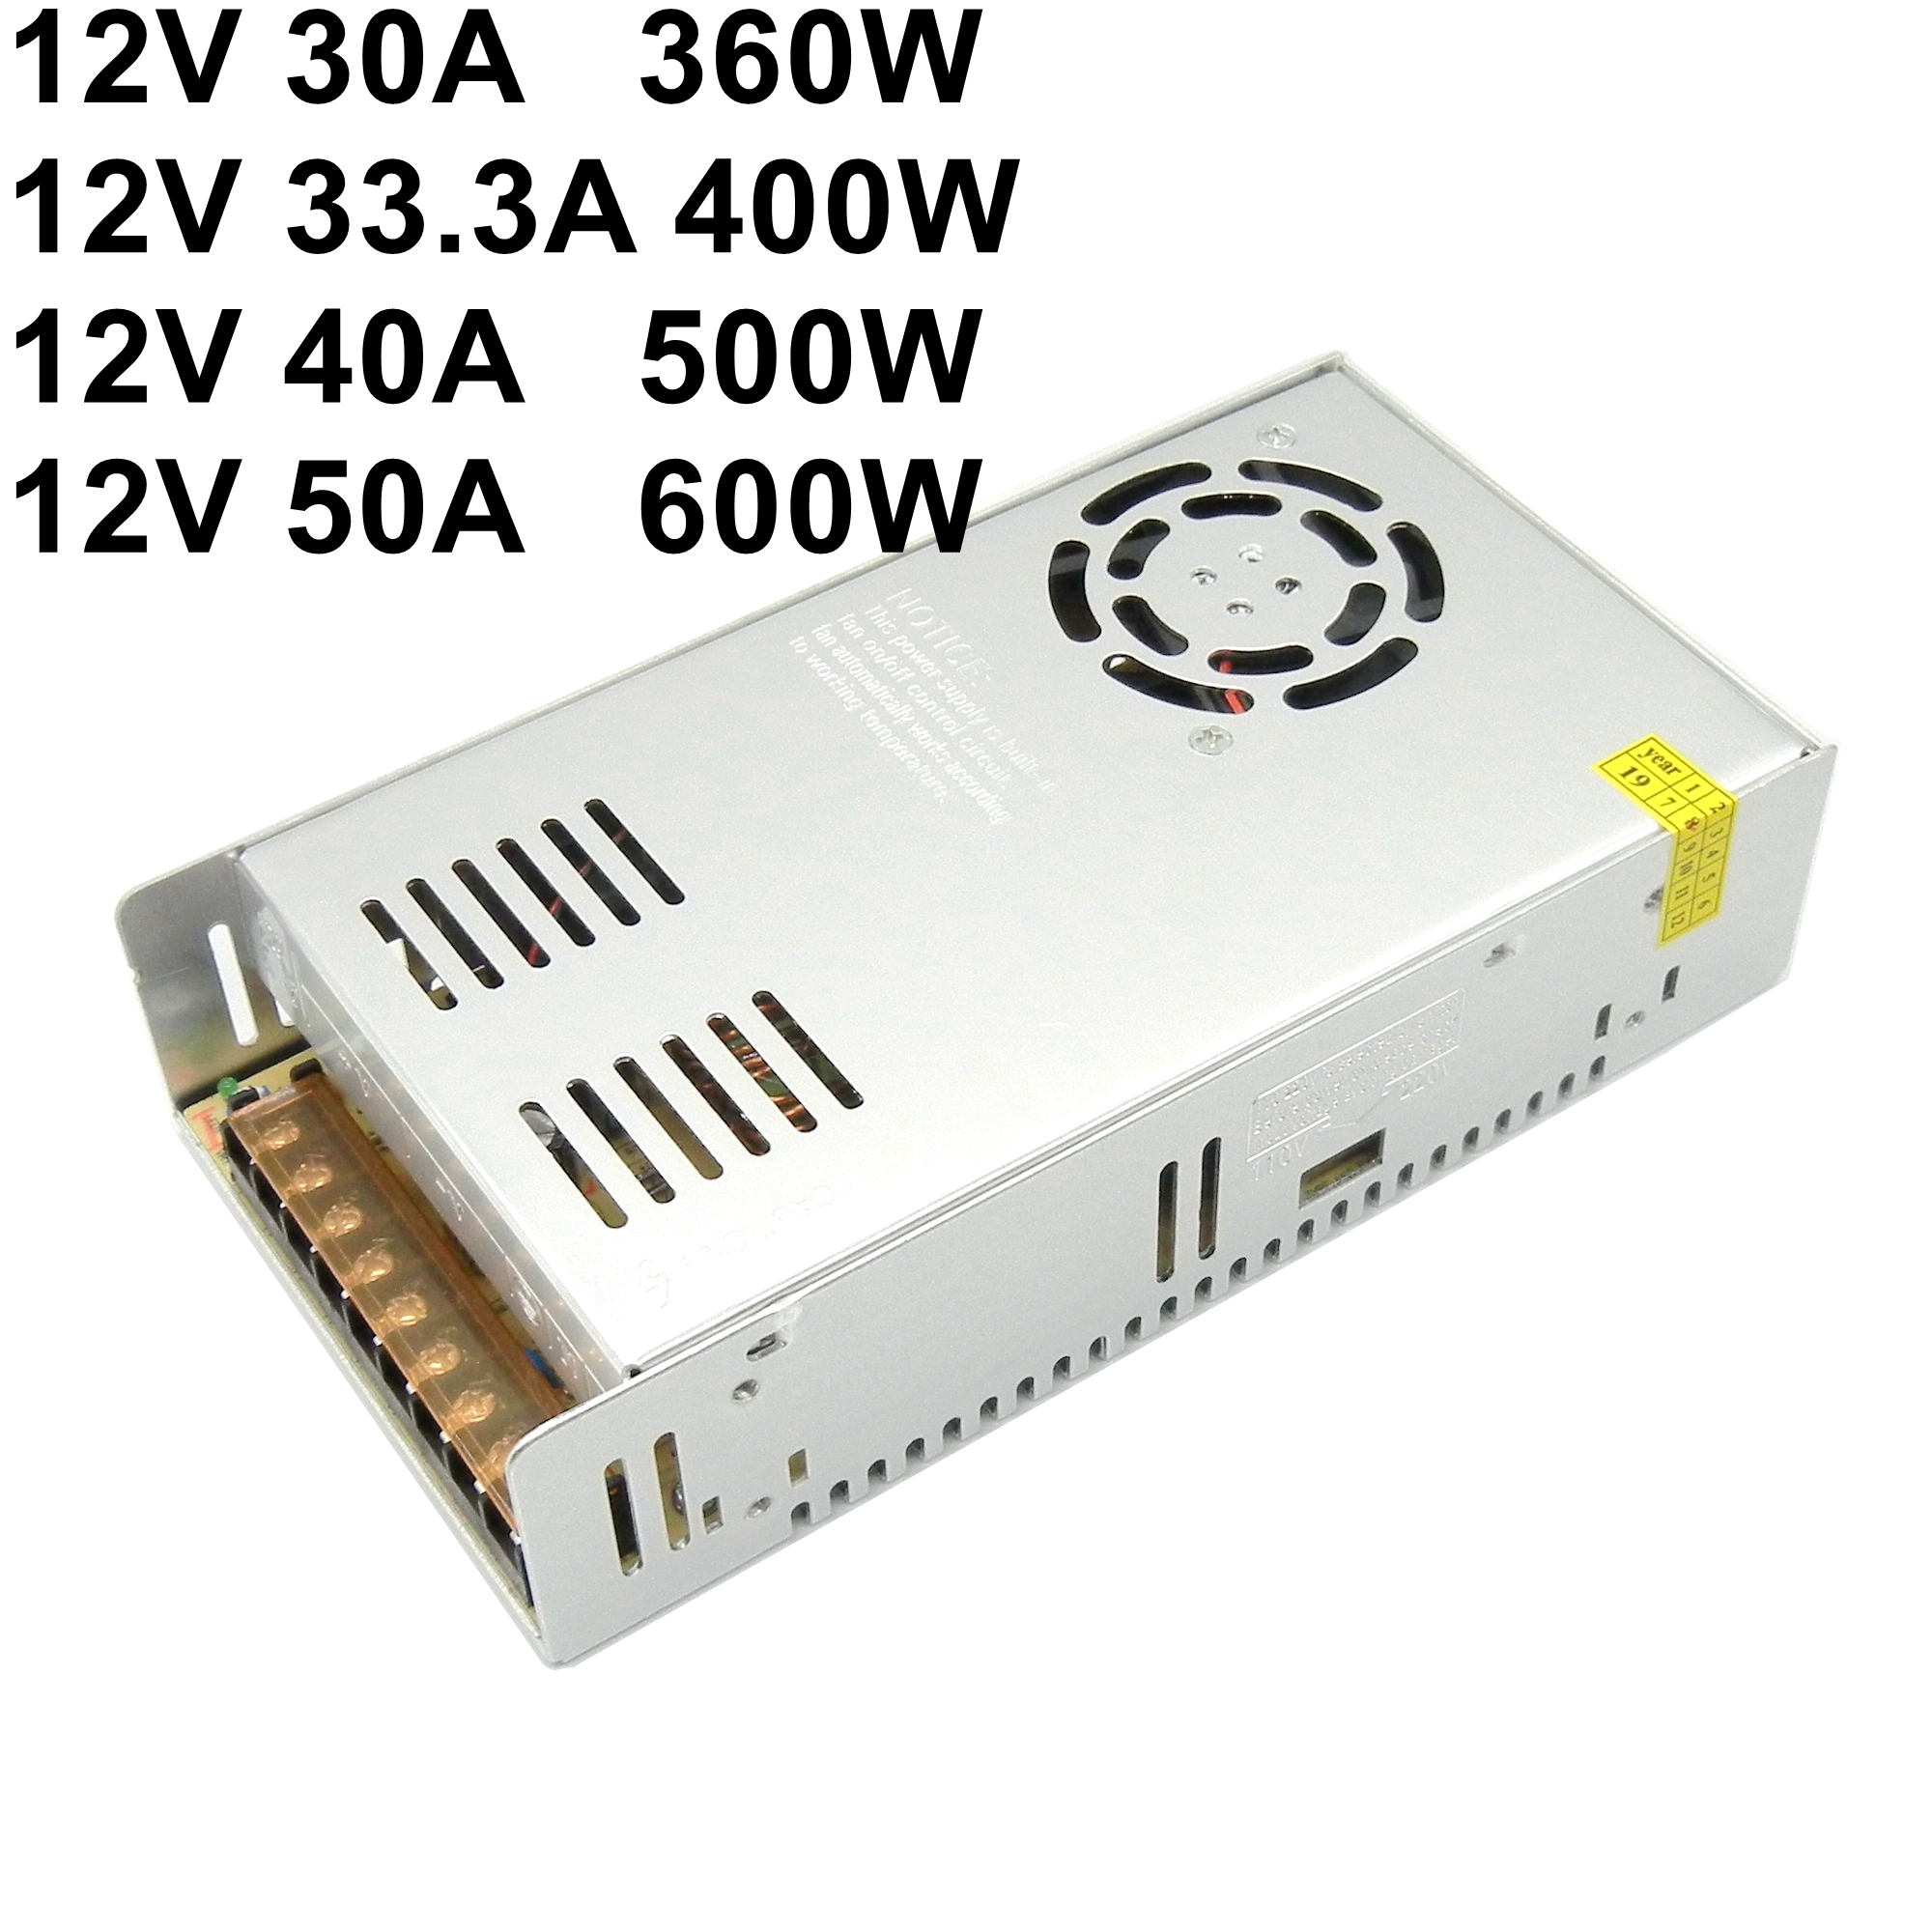 DC 12V 30A 33A 40A 50A Regulated Switching Power Supply 360W 400W 500W 600W Led Strip Driver Transformer 110V 220V AC TO DC SMPS image